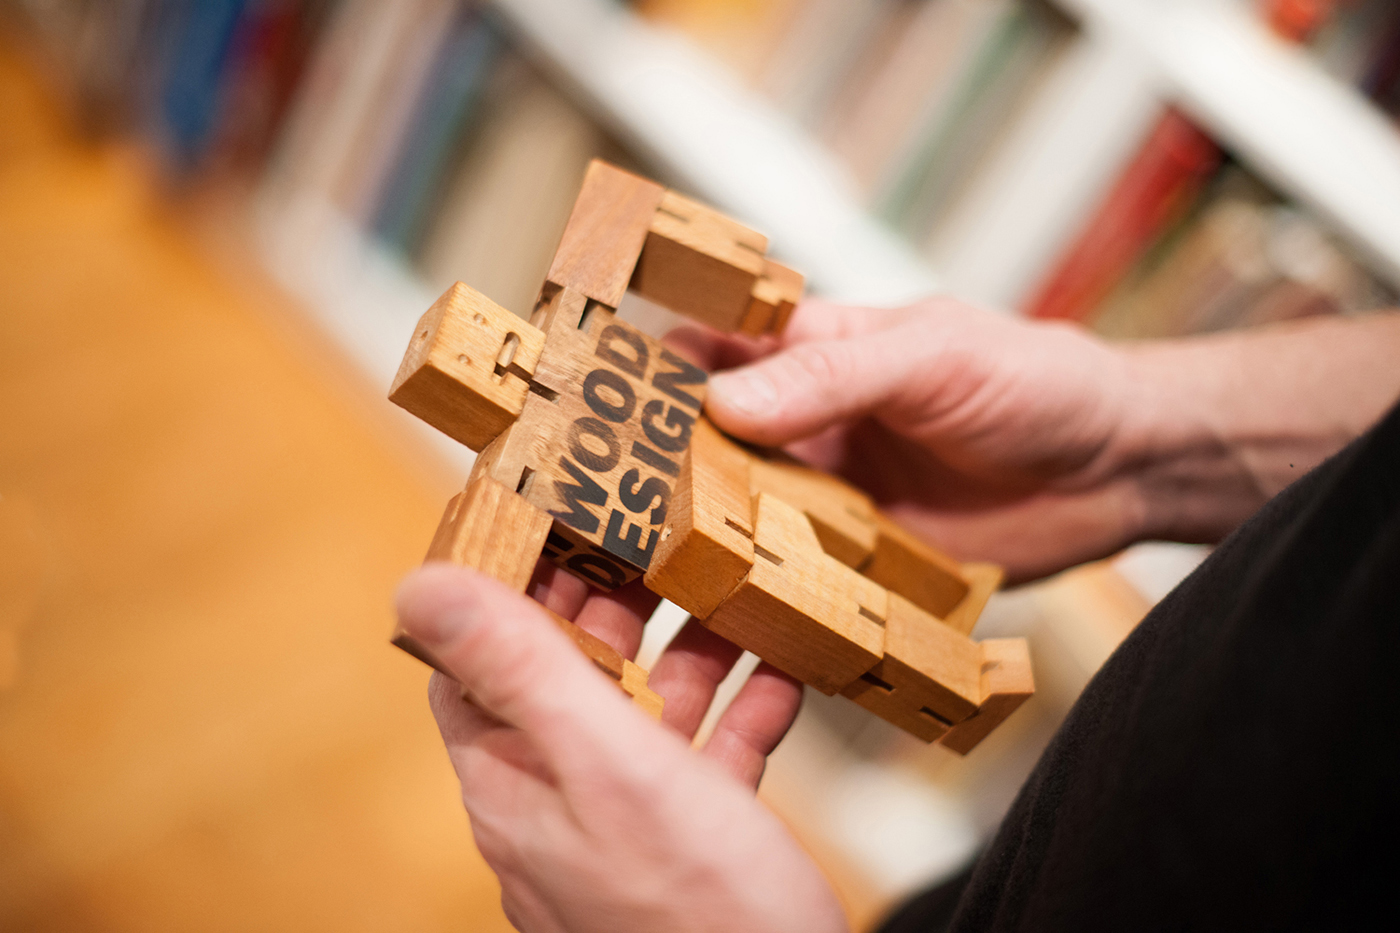 Cube of wood that transforms as you twist the puzzle.